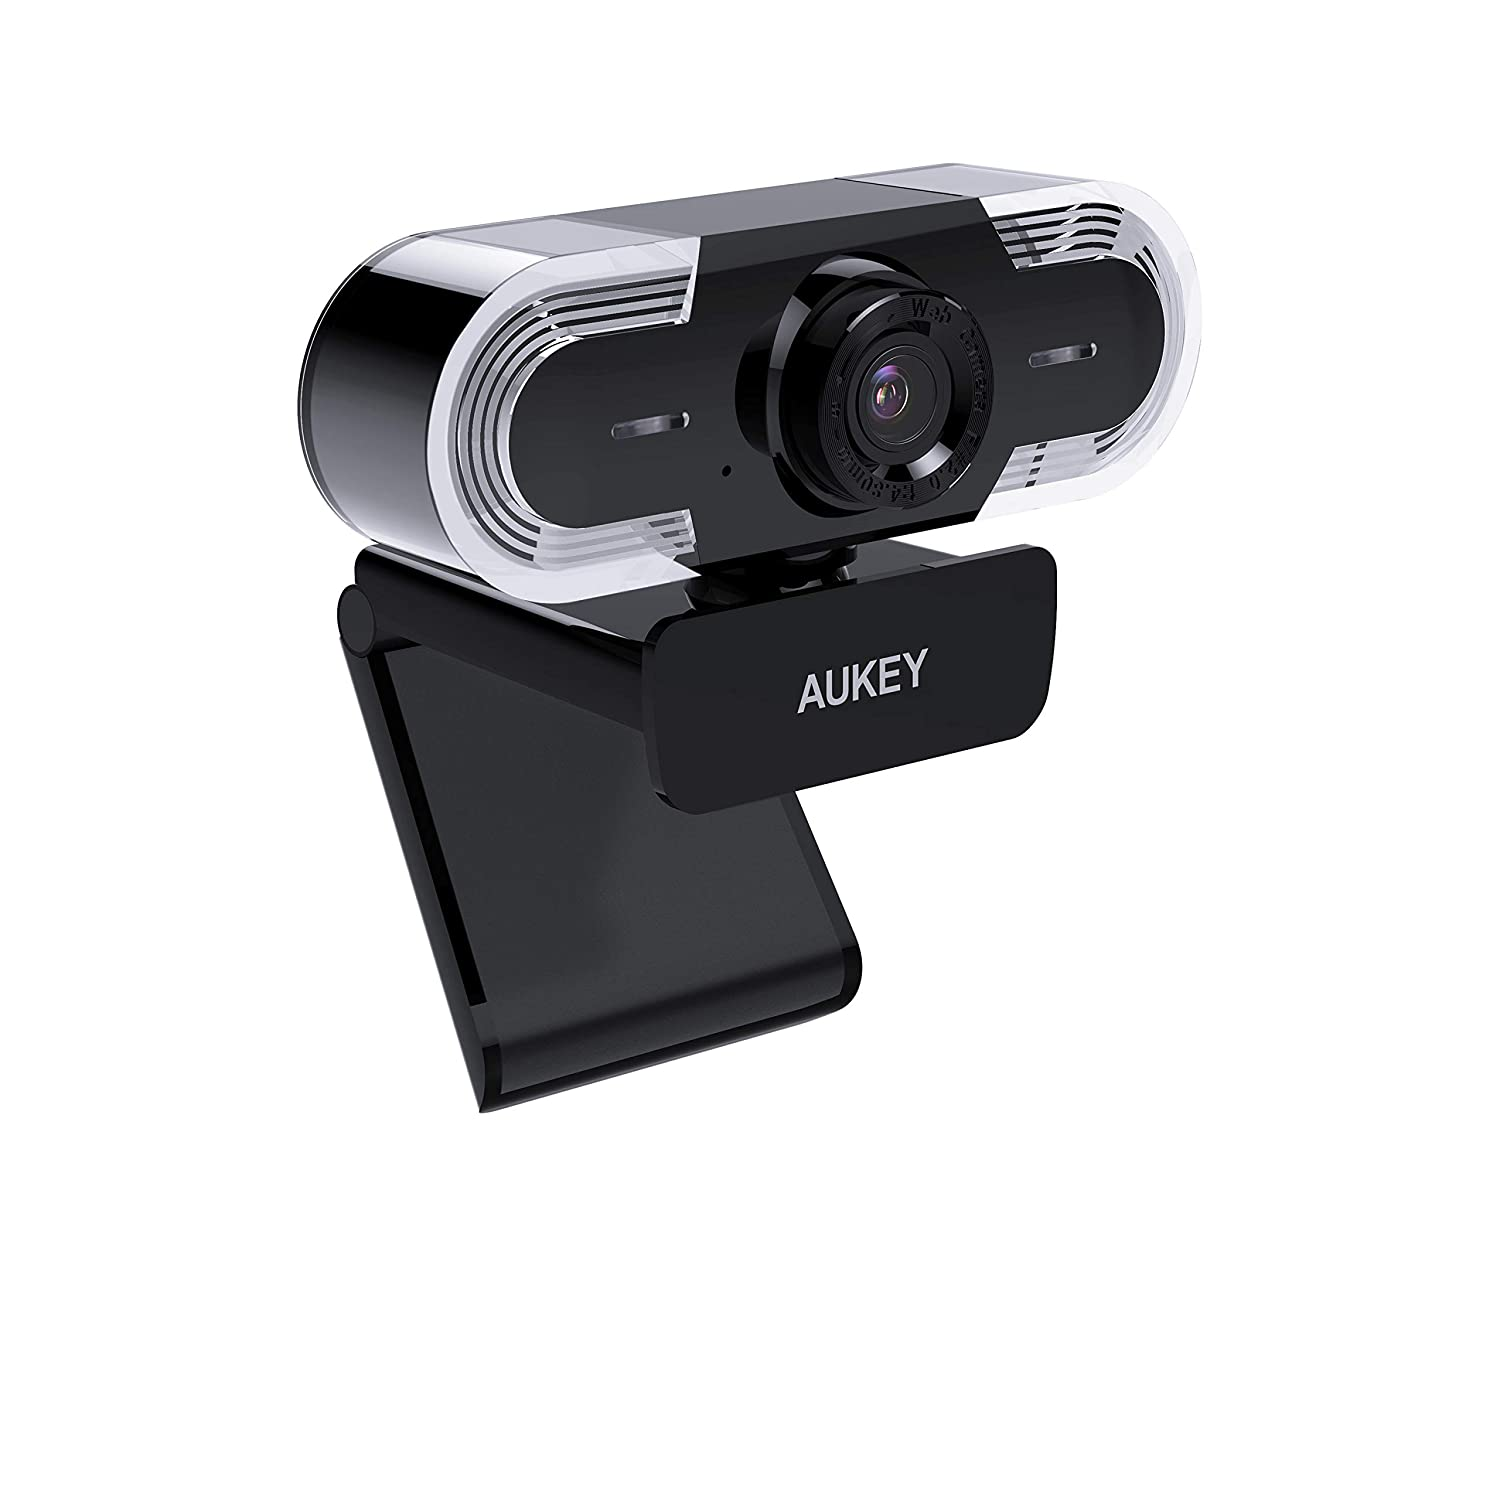 AUKEY PC-LM1A webcam